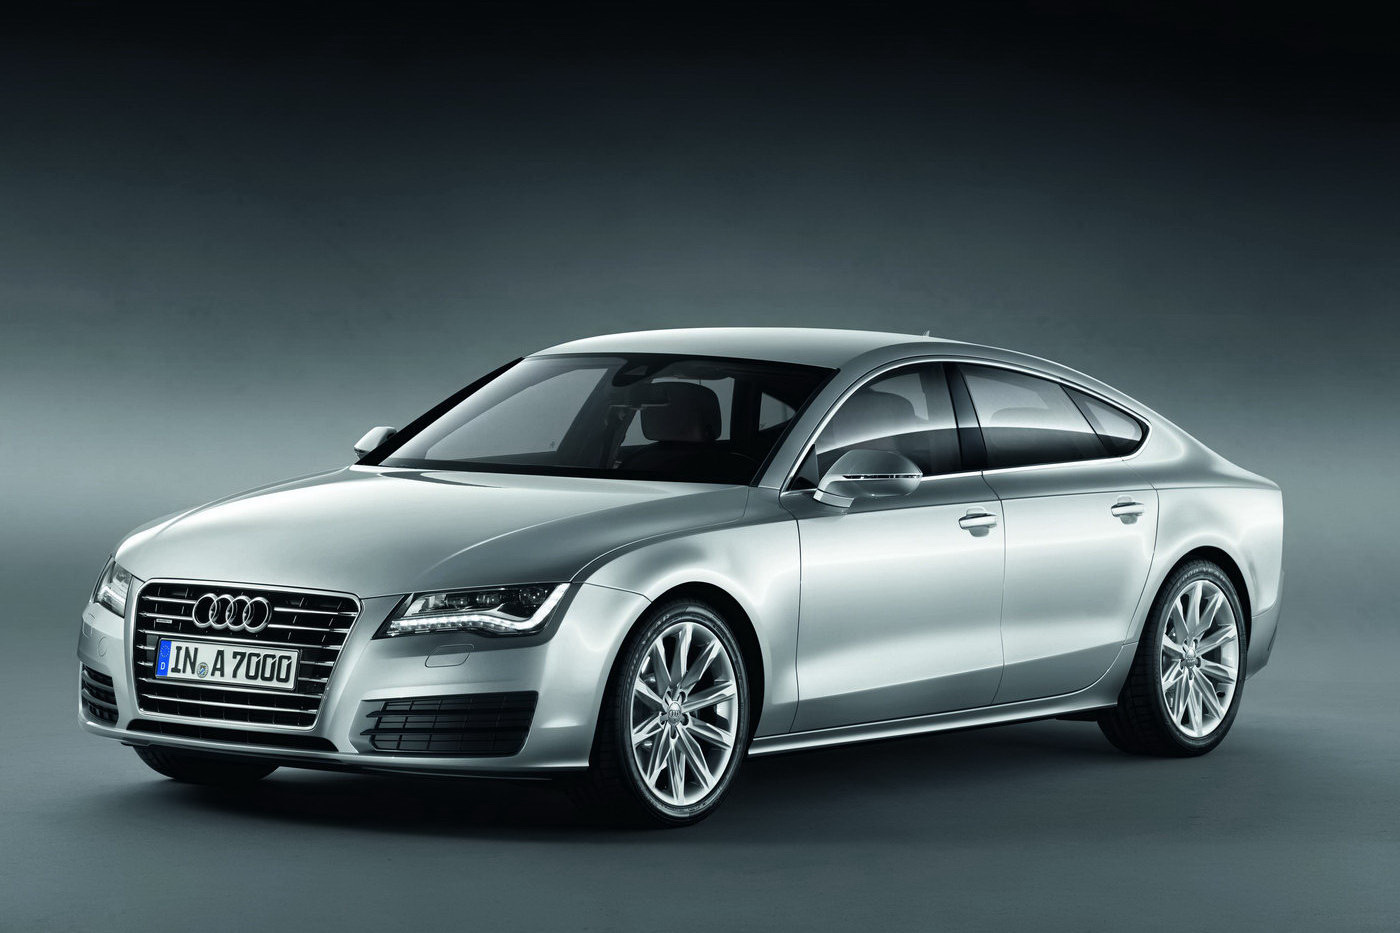 2011 audi a7 sportback official details and photos. Black Bedroom Furniture Sets. Home Design Ideas